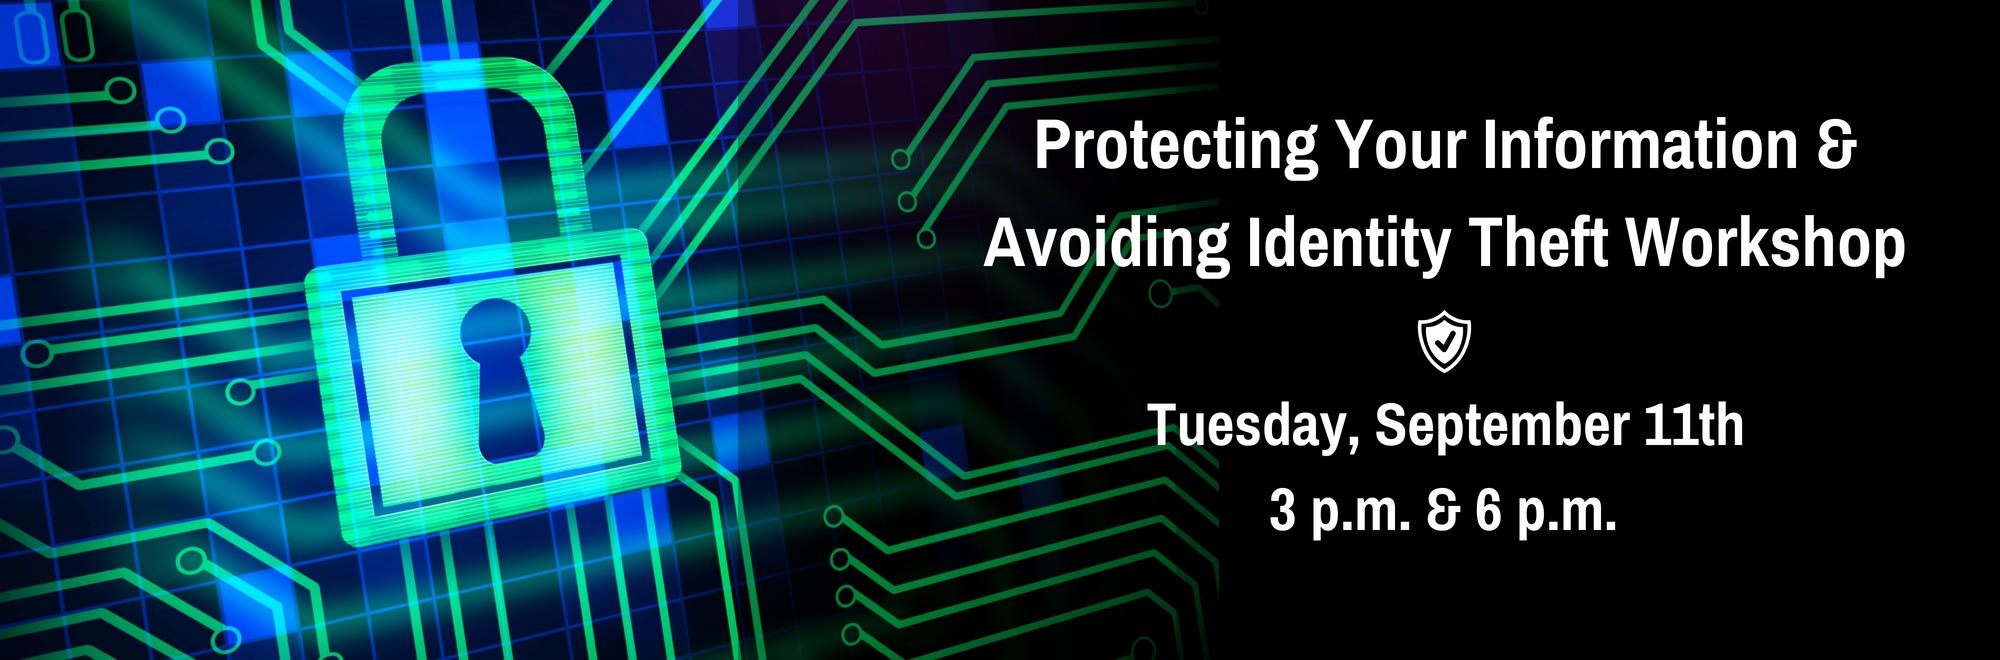 Protecting Your Information and Avoiding Identity Theft Workshop